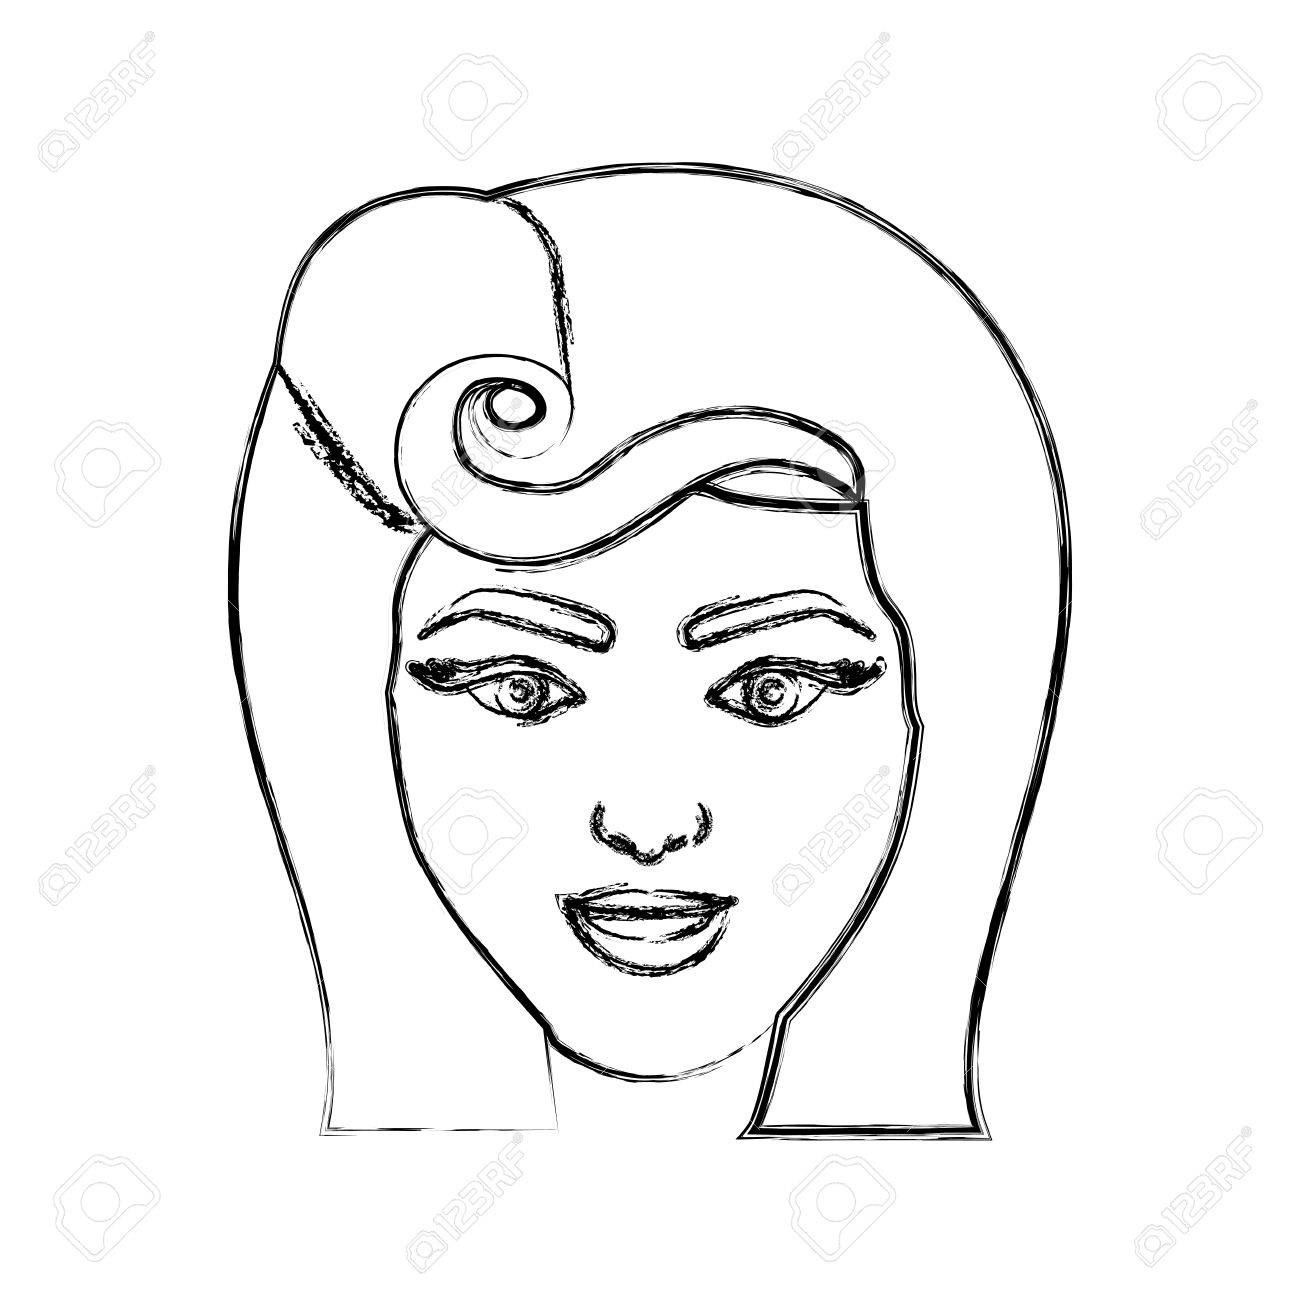 1300x1300 Blurred Silhouette Drawing Of Face Woman With Pin Up Swirl